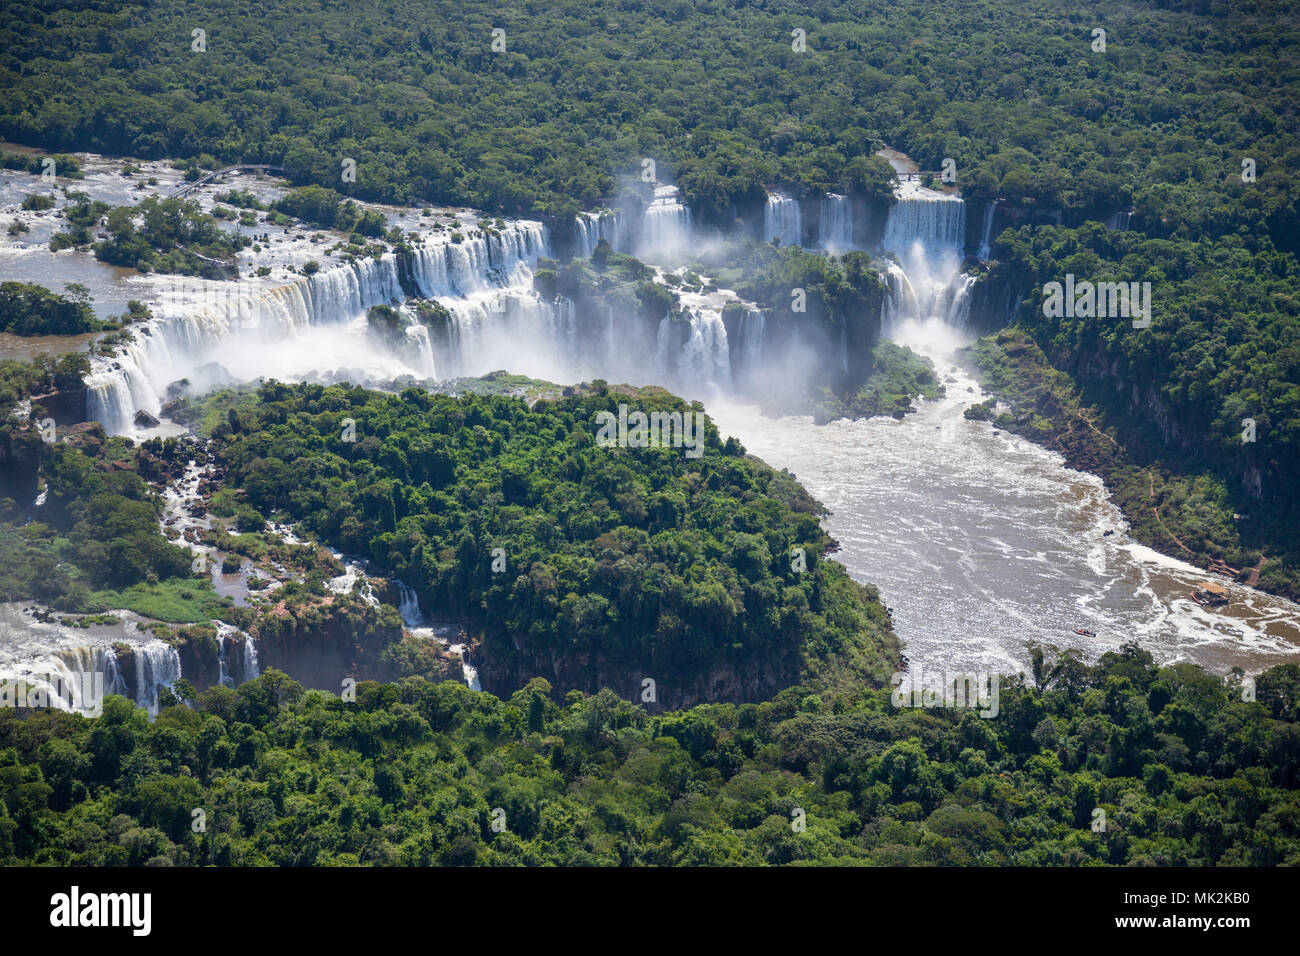 Aerial view of the Iguassu or Iguacu falls - the world's biggest waterfall system on the border of Brazil an Argentina - Stock Image